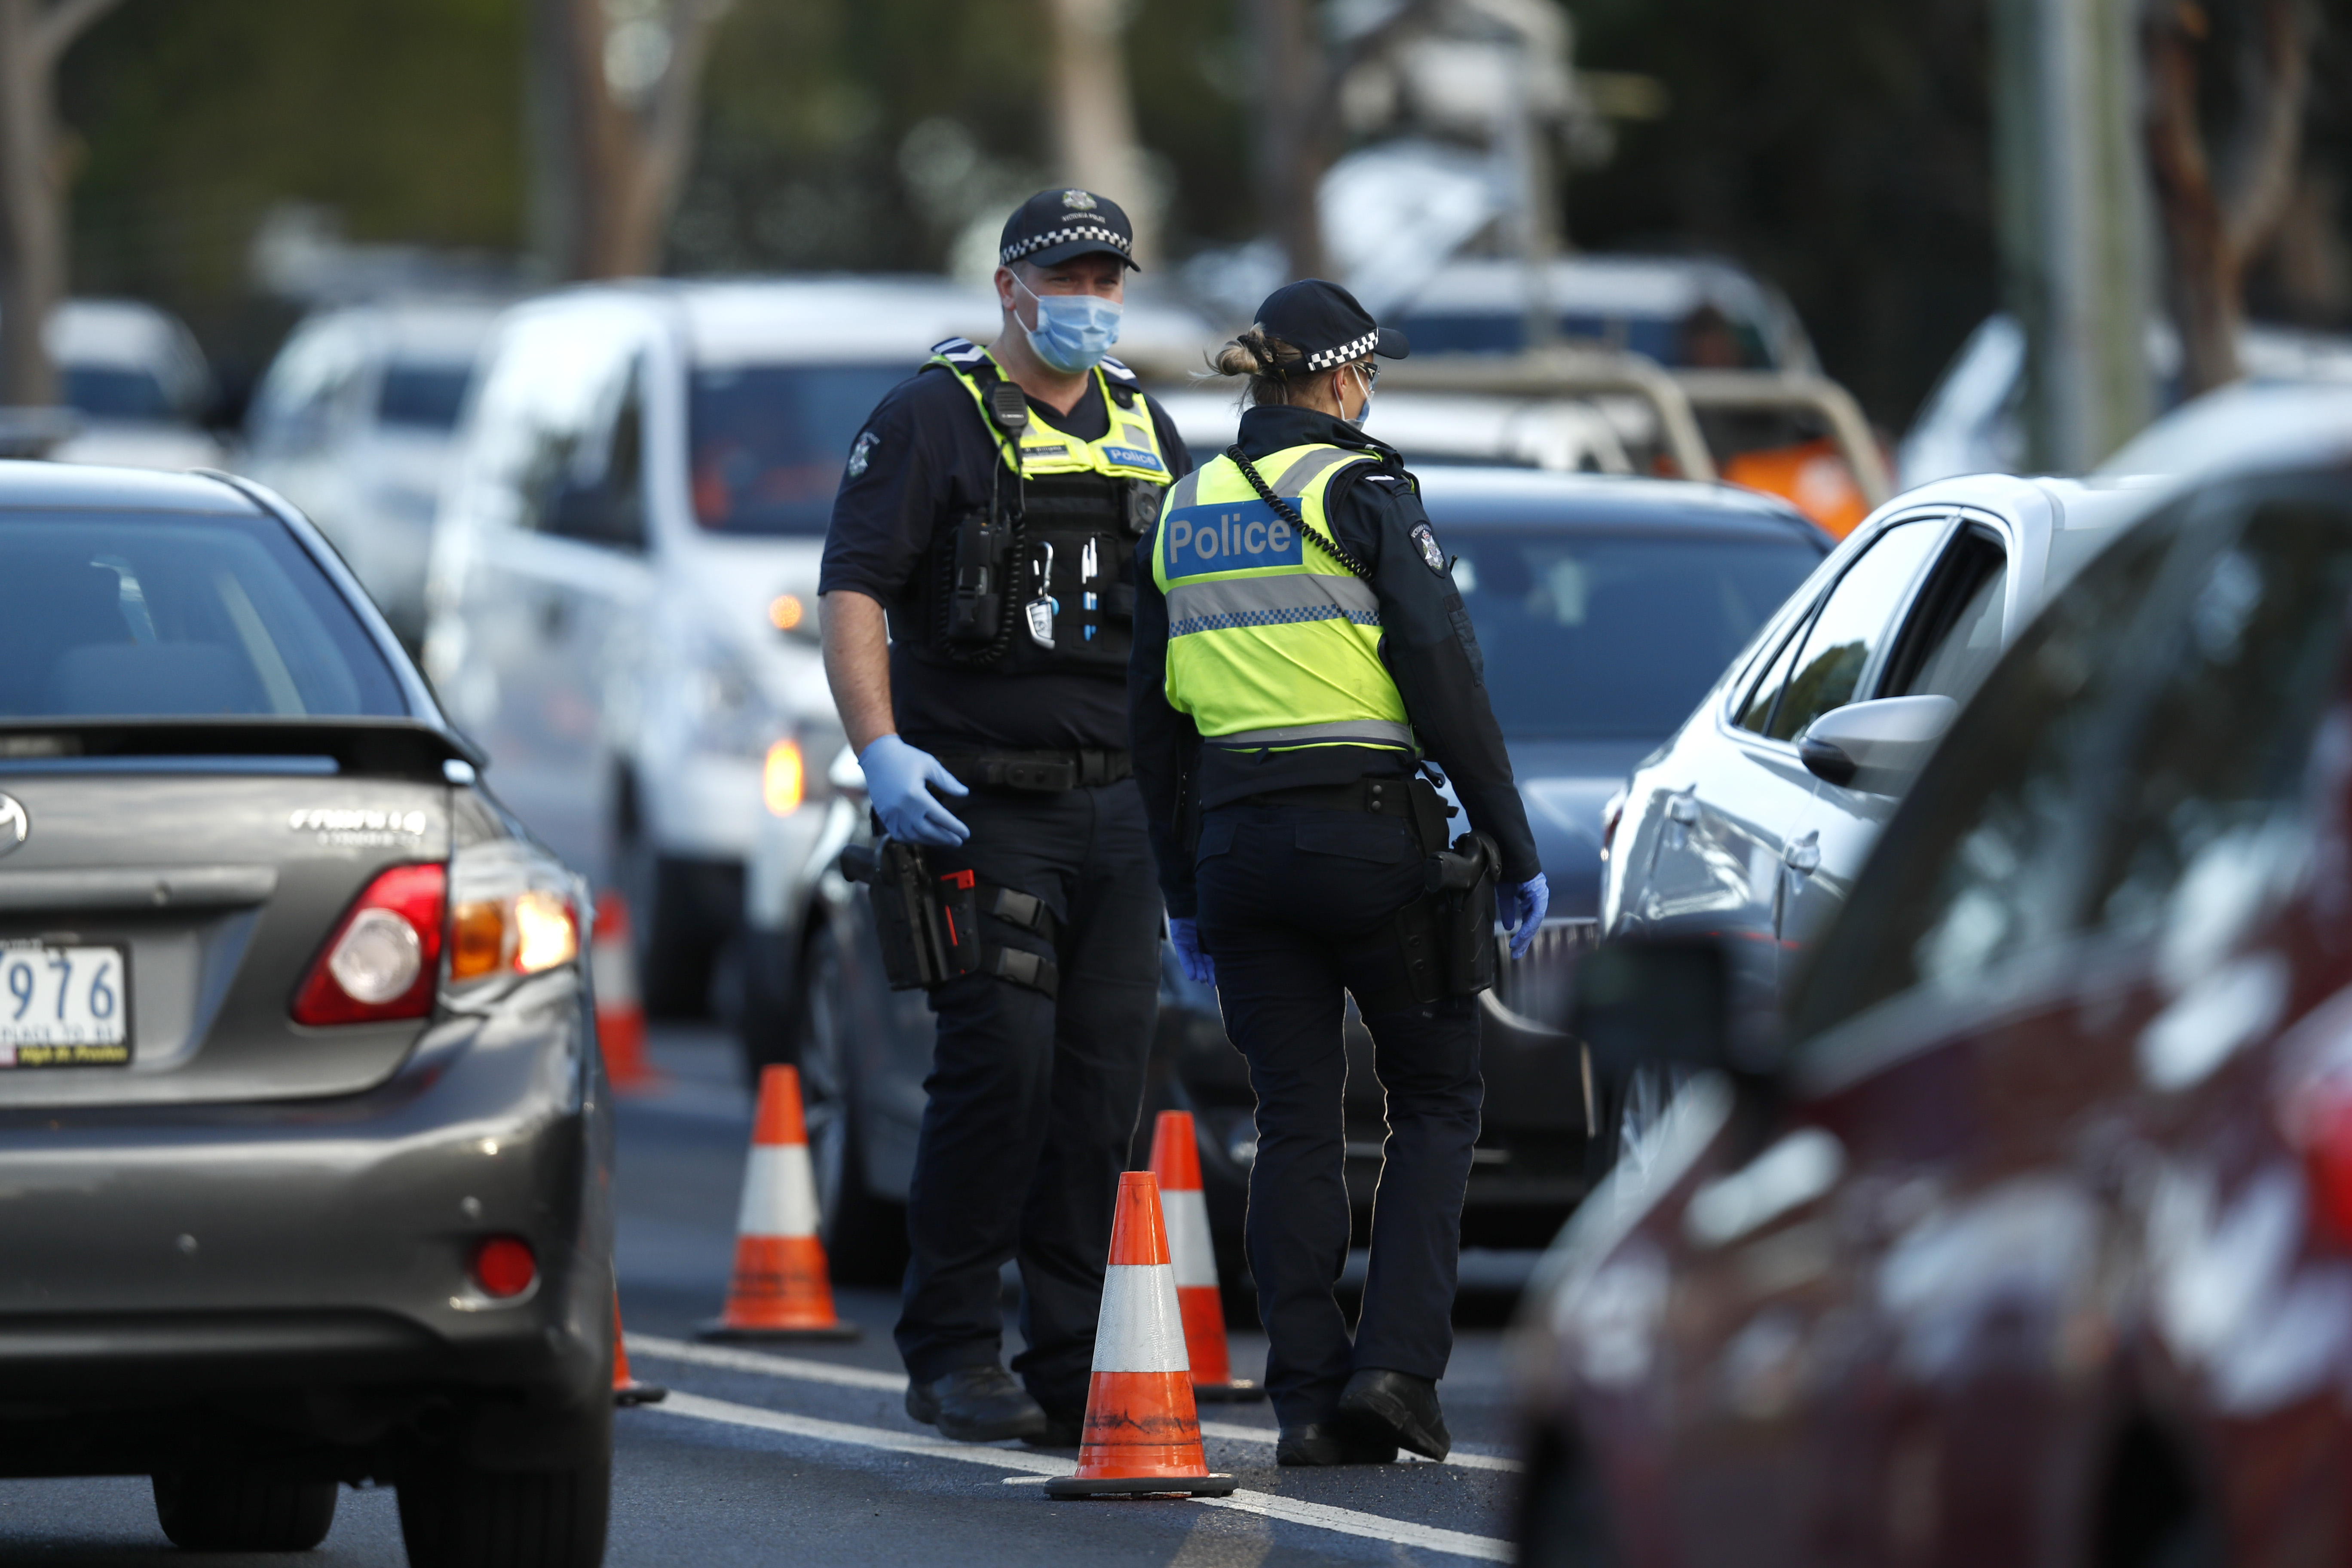 Article image for BACK INTO LOCKDOWN: Stage 3 restrictions return for ALL of Melbourne